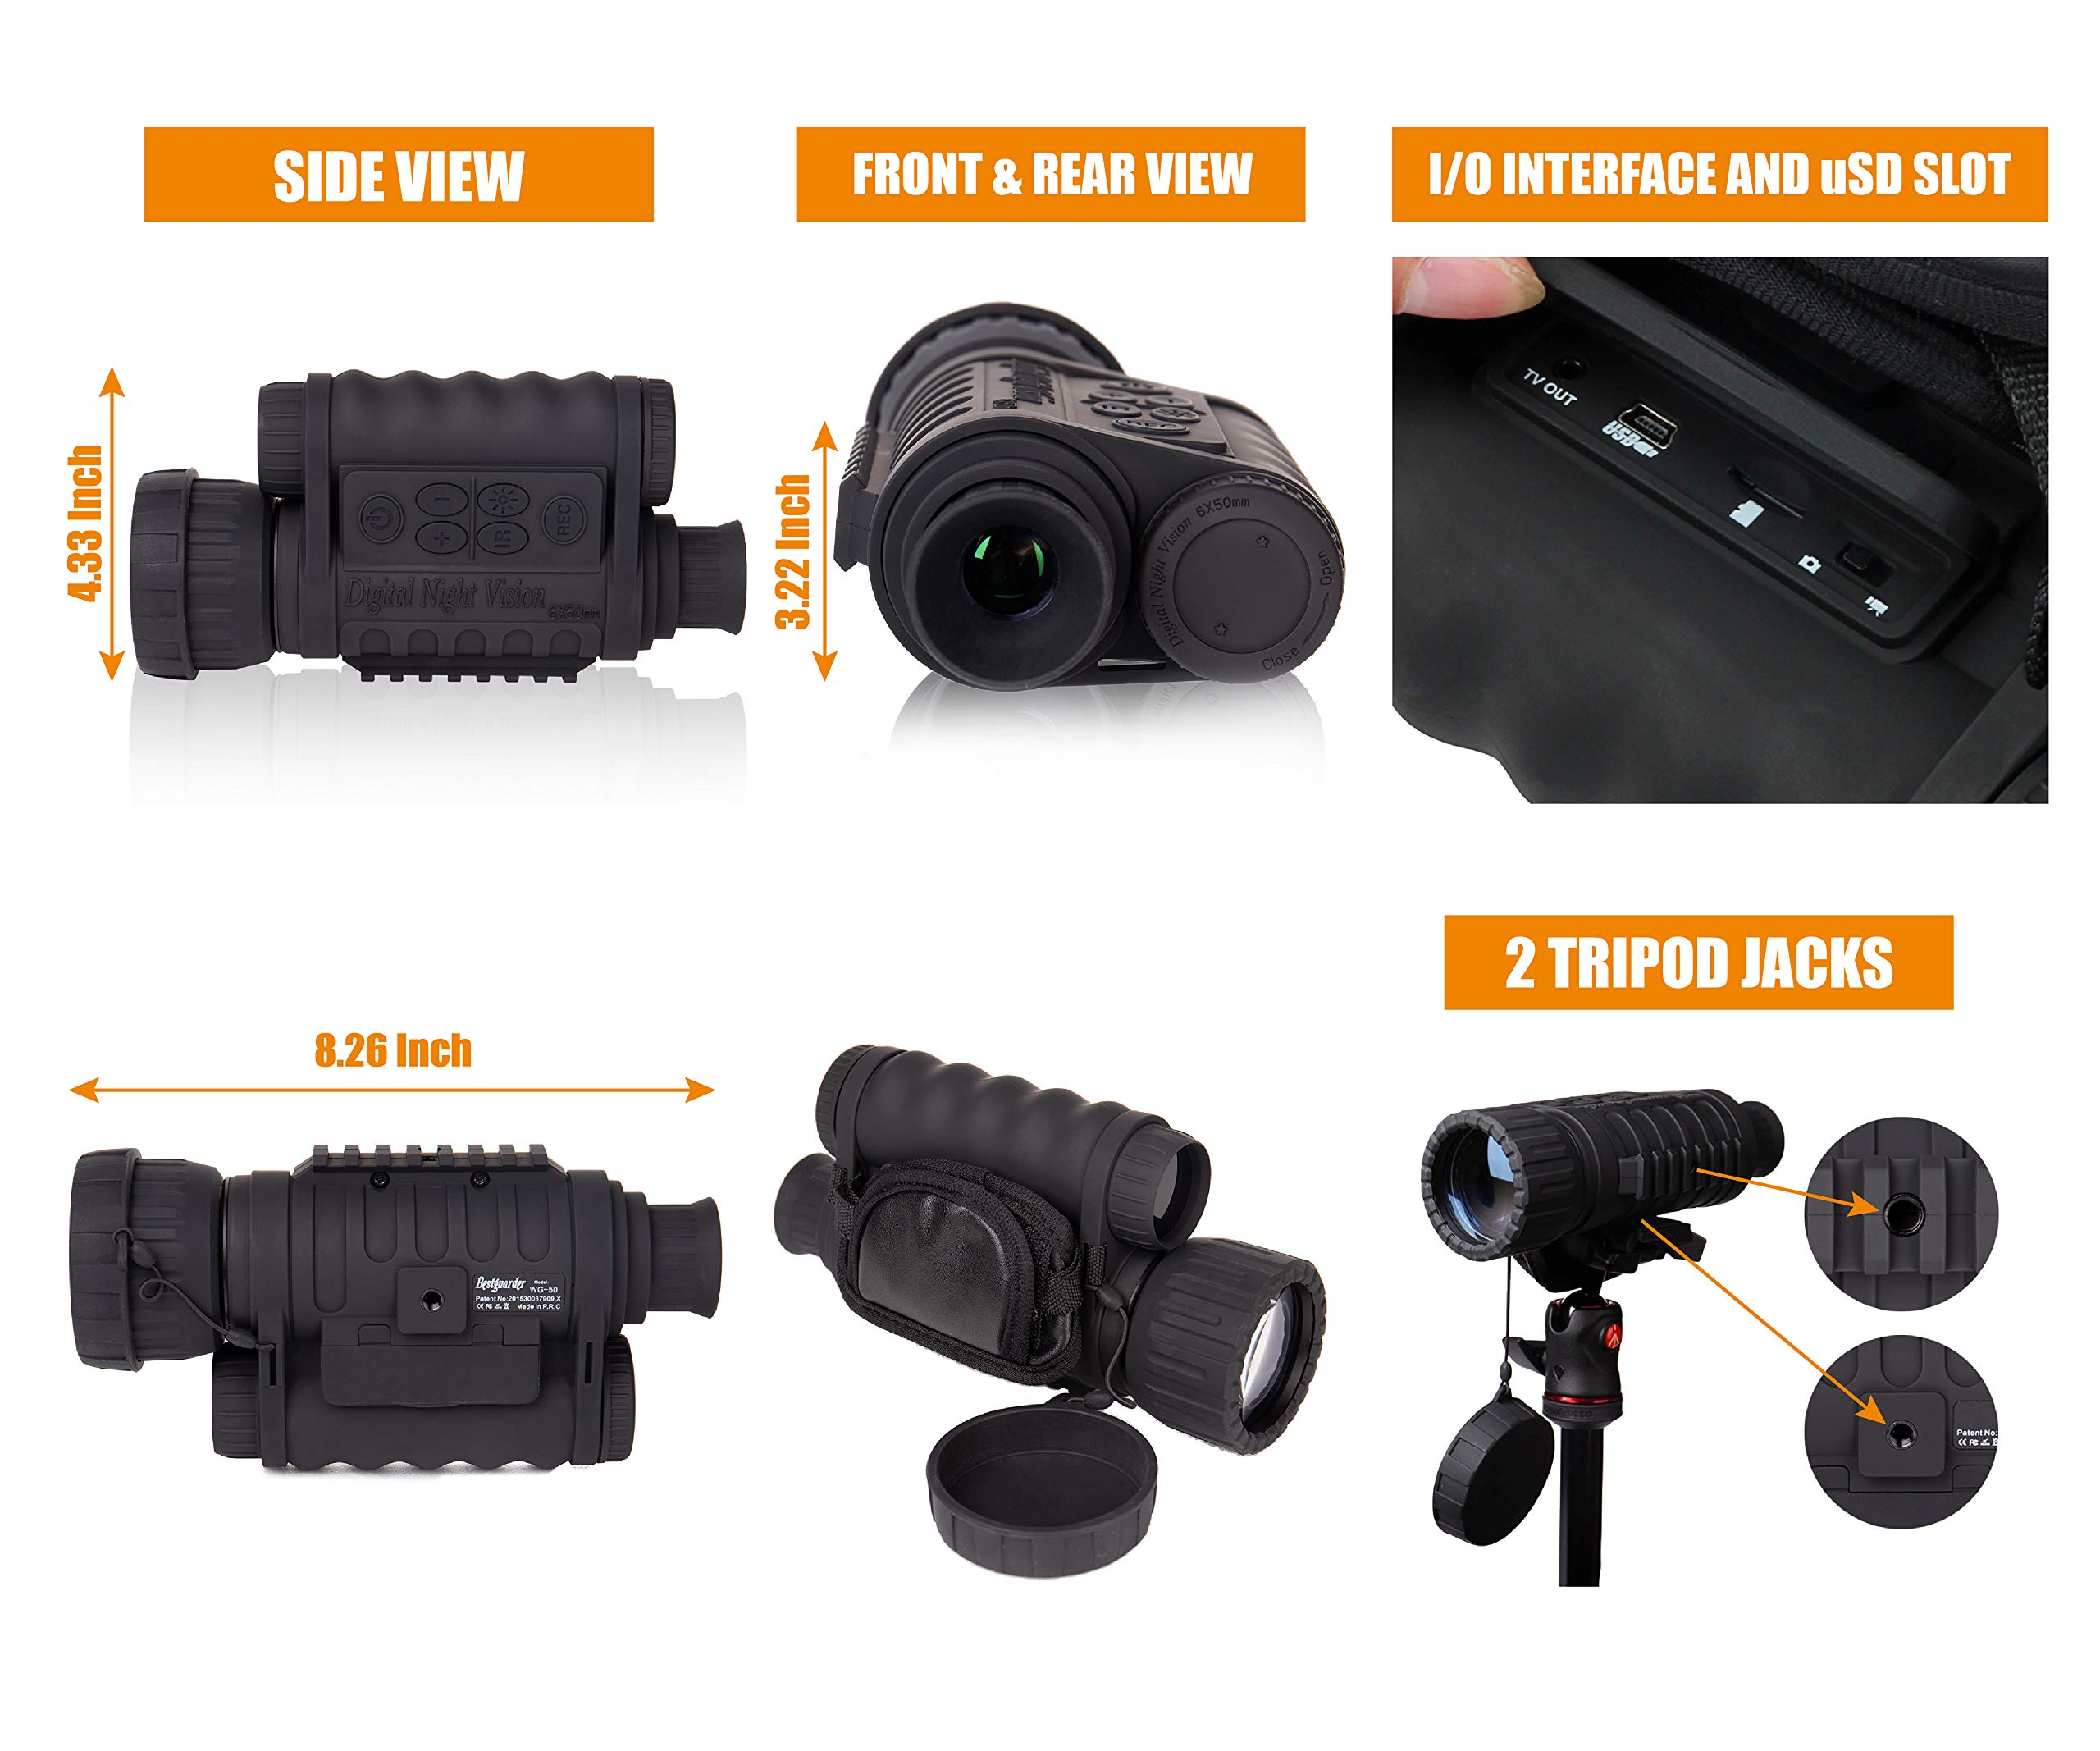 Summit Tools HD Digital Night Vision Monocular up to 1150 FT Range, 1.5-inch Display with Camera&Camcorder Function, 6X Magnification and 50 mm Objective Lens, Takes 5MP Photo & HD Video by Summit Tools (Image #3)